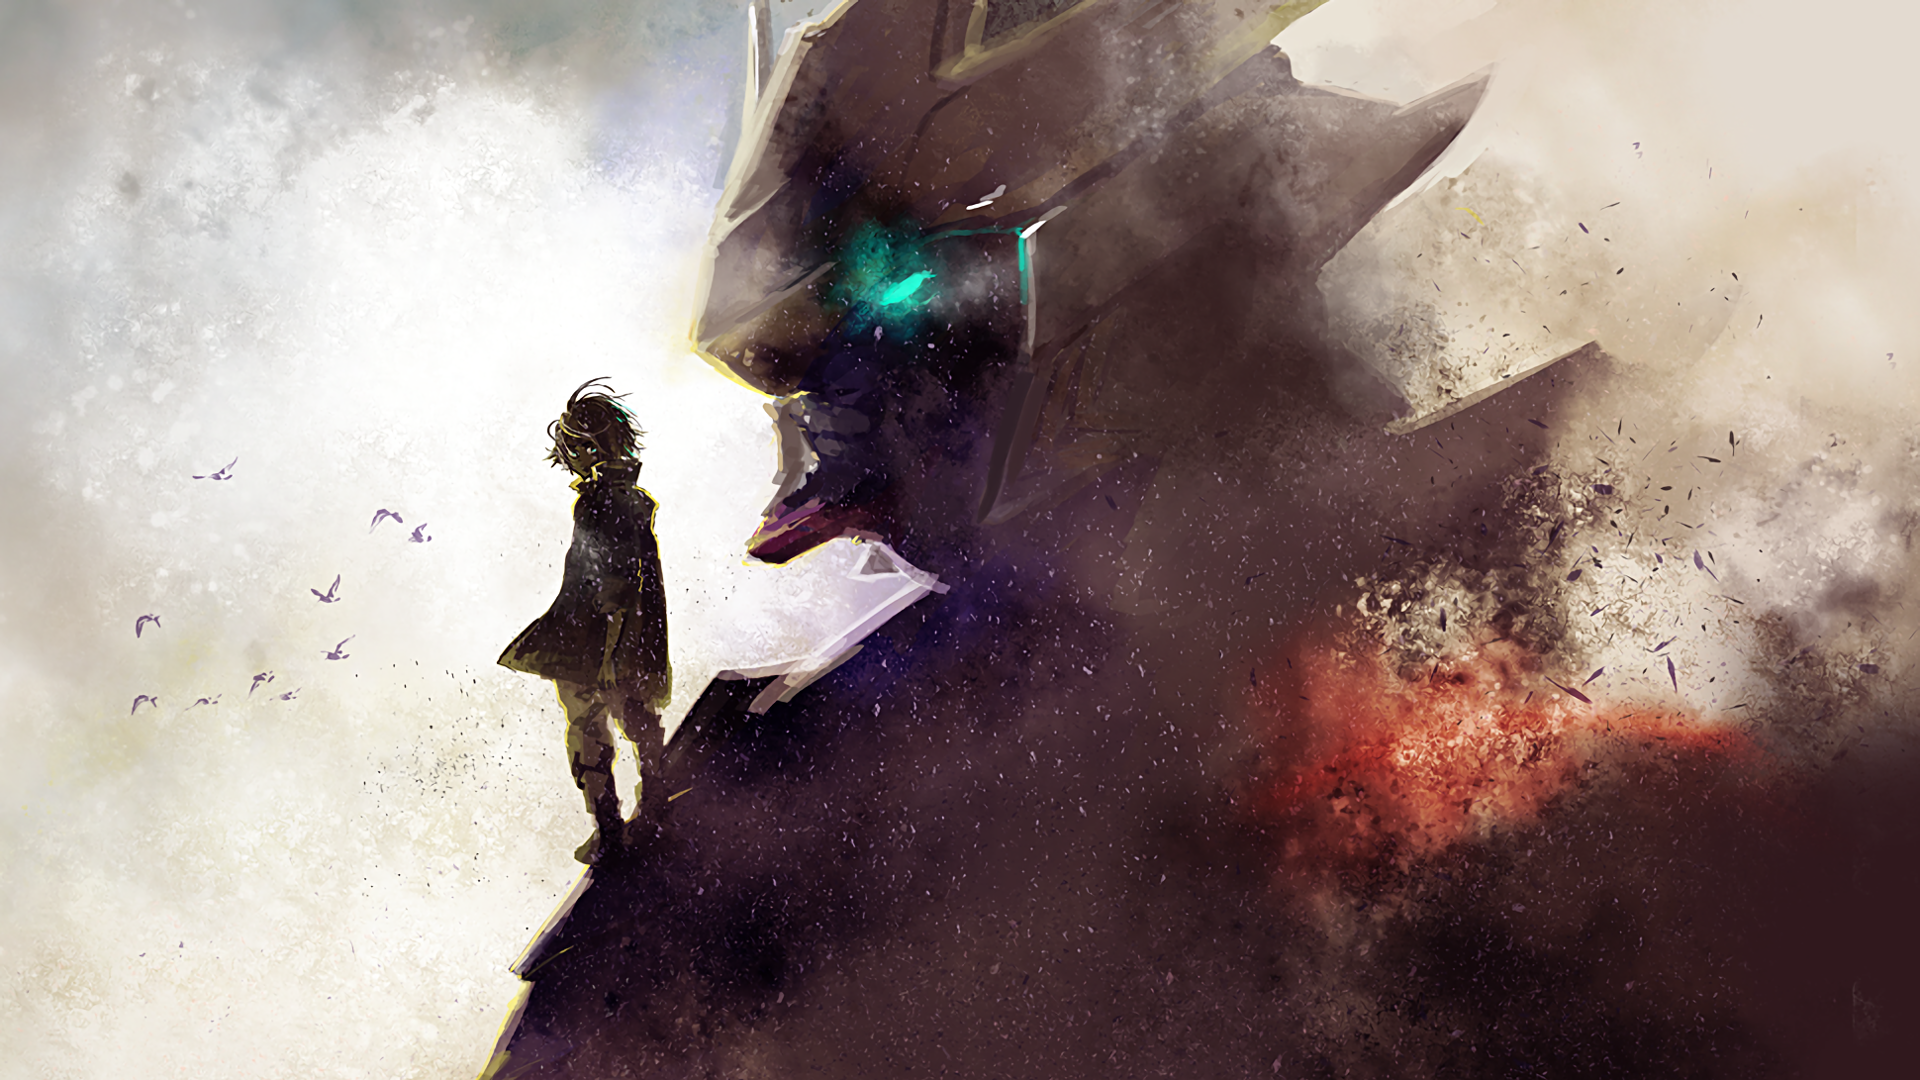 Mobile Suit Gundam Wallpaper 1080p HD Quality Resolution 1920x1080 px 2.58 MB